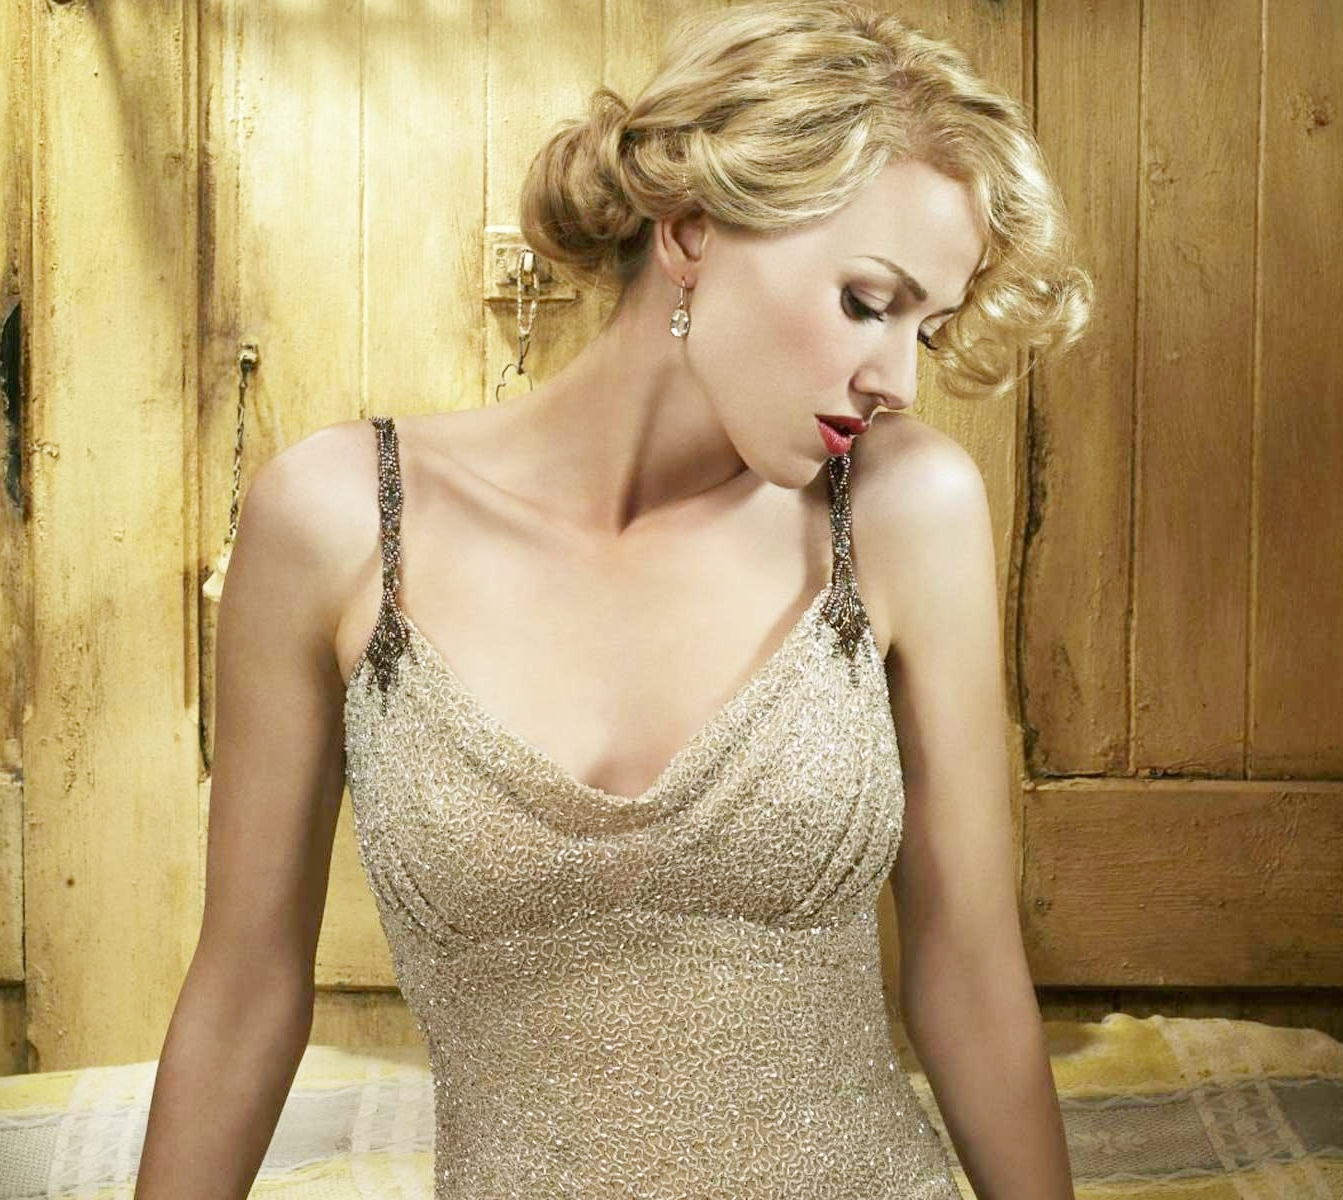 Hollywood Celebrity Naomi Watts HD Wallpapers and Bio 1199